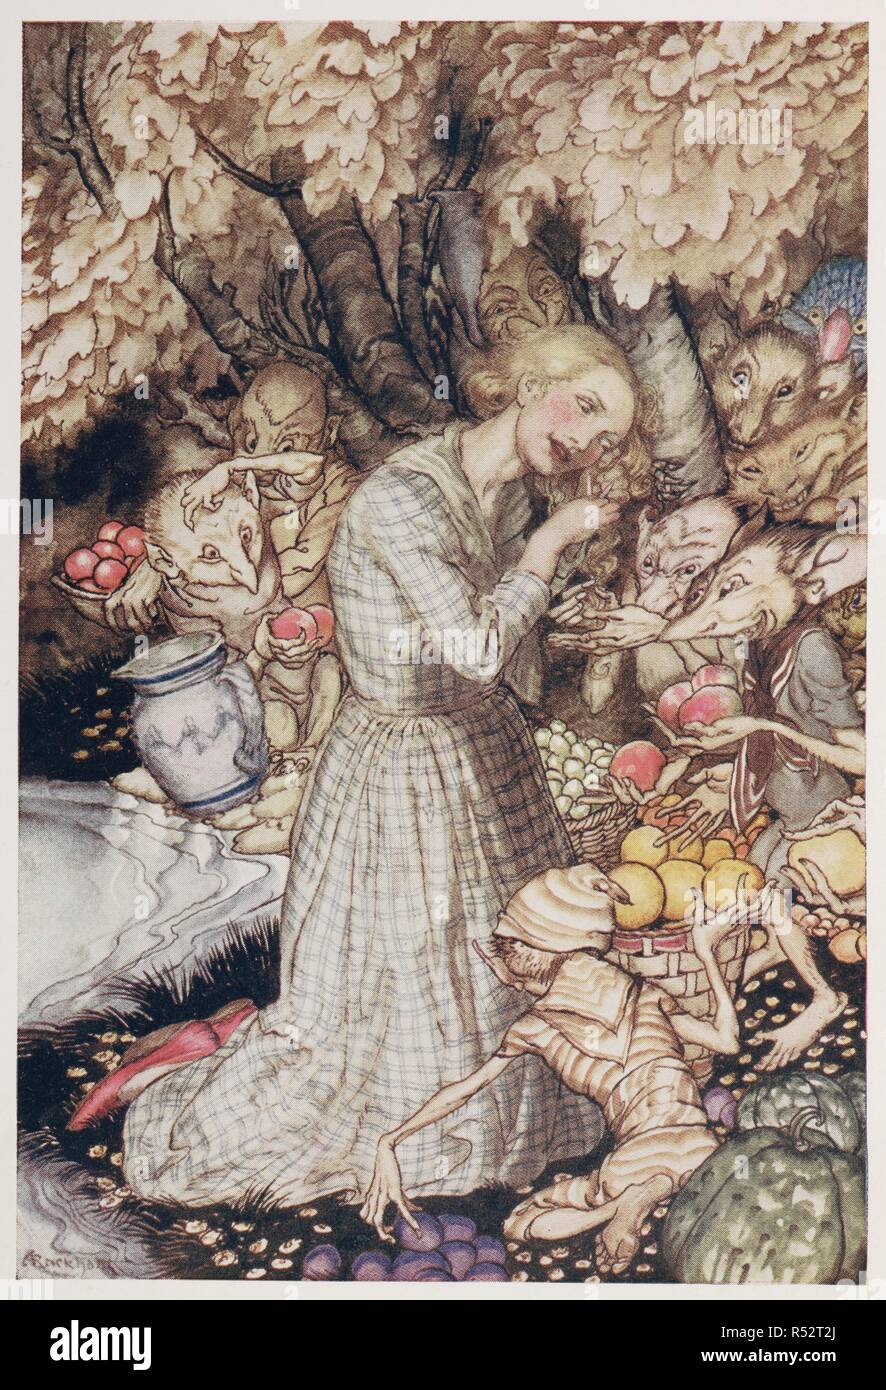 578bbef3c68b4 Illustration of a girl with goblins under a tree. Goblin Market ...  Illustrated